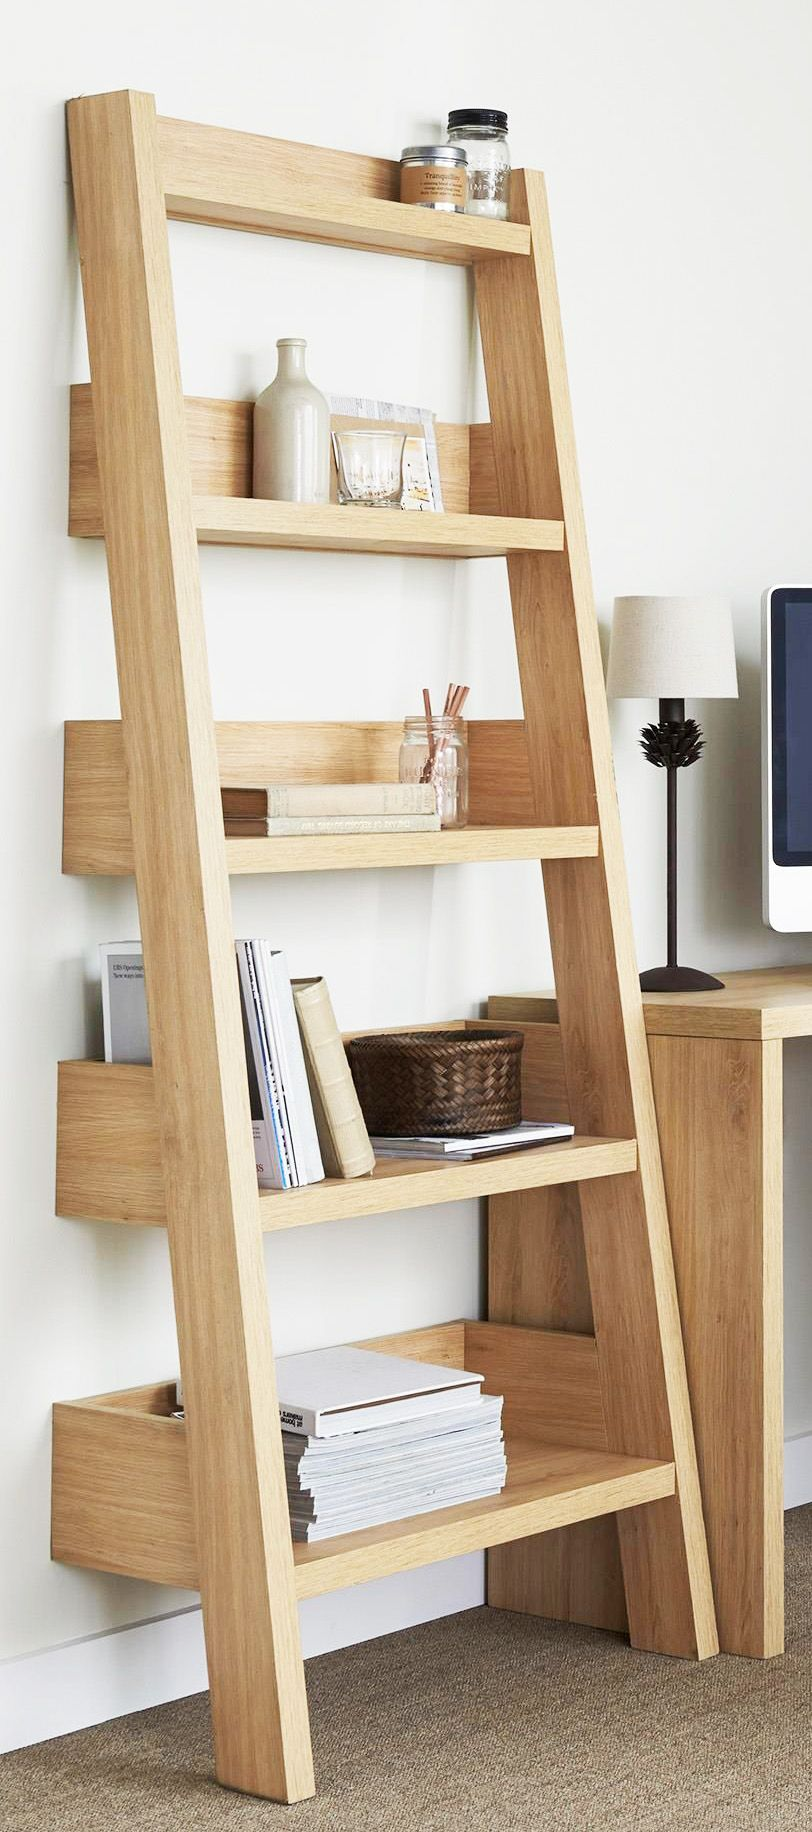 roma oak leaning shelf